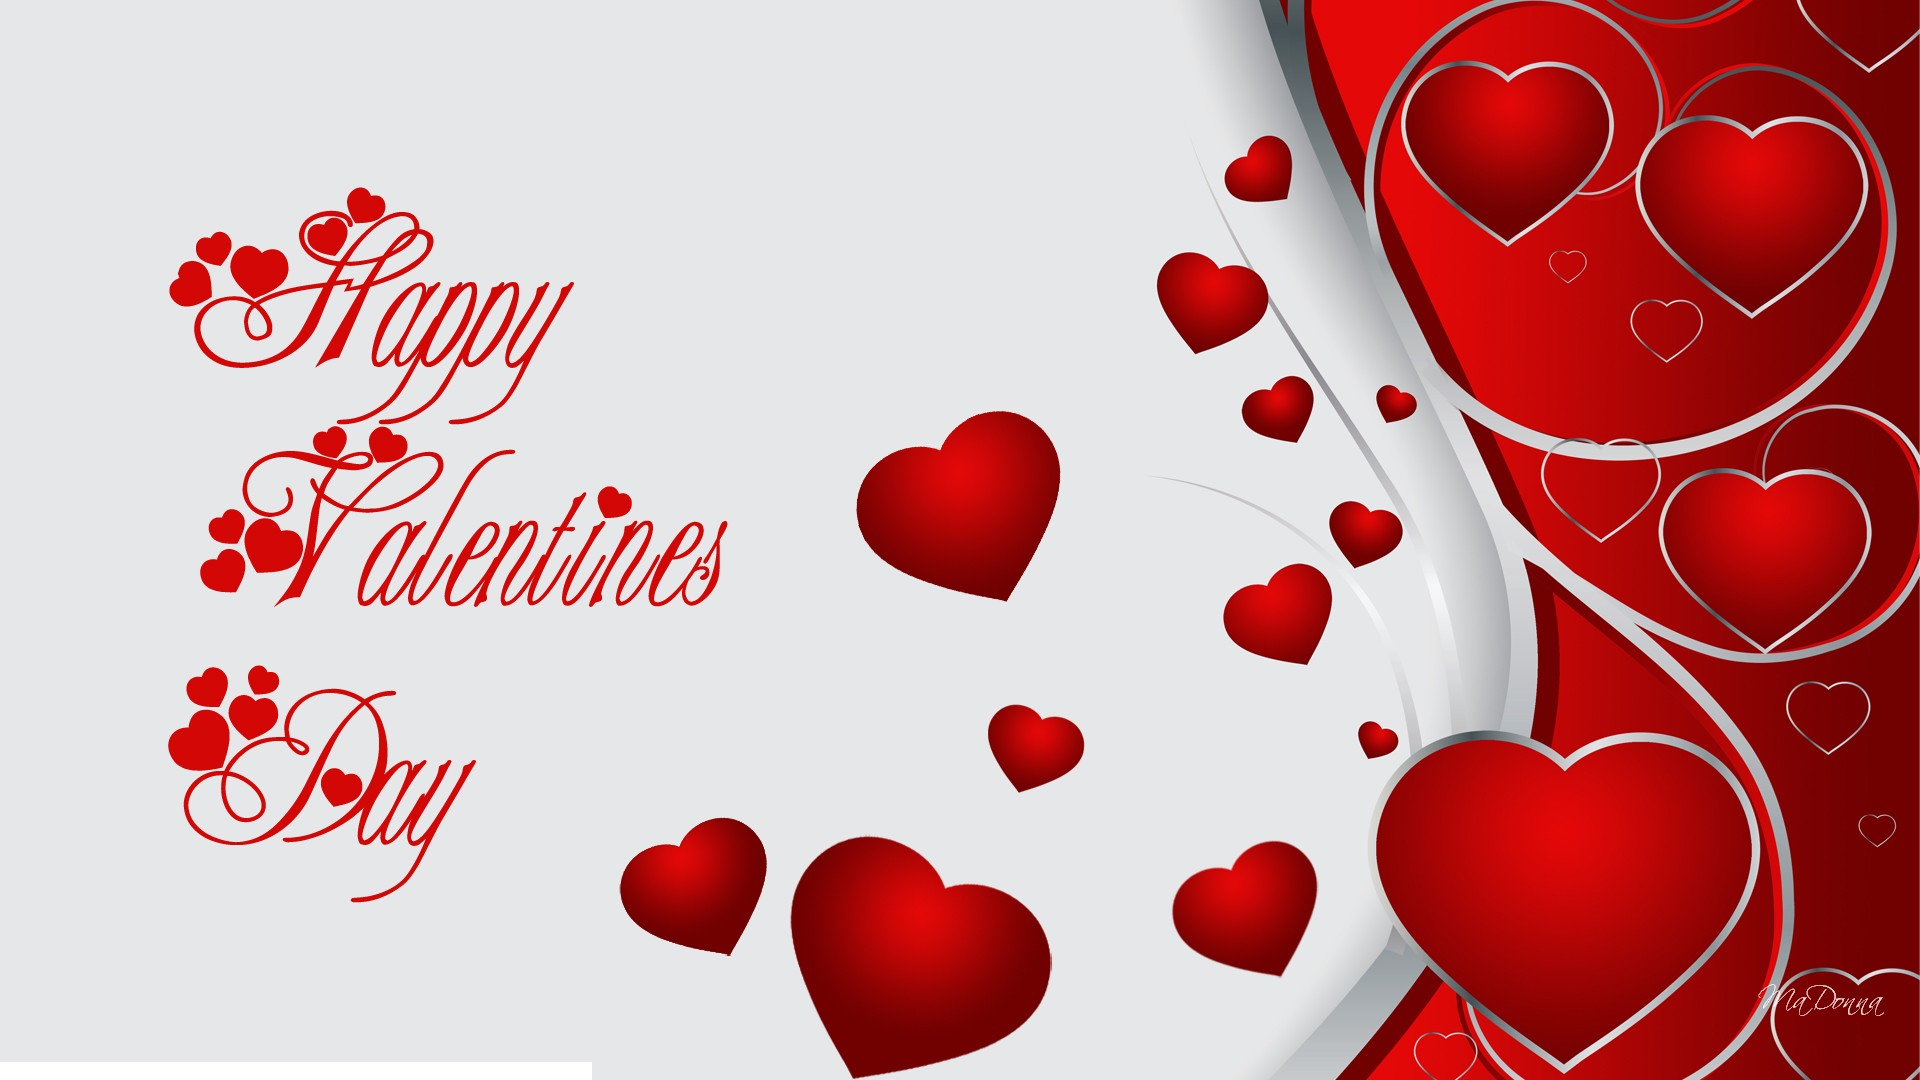 Love Kiss Wallpaper With Quotes Valentine Wallpapers Pictures Images